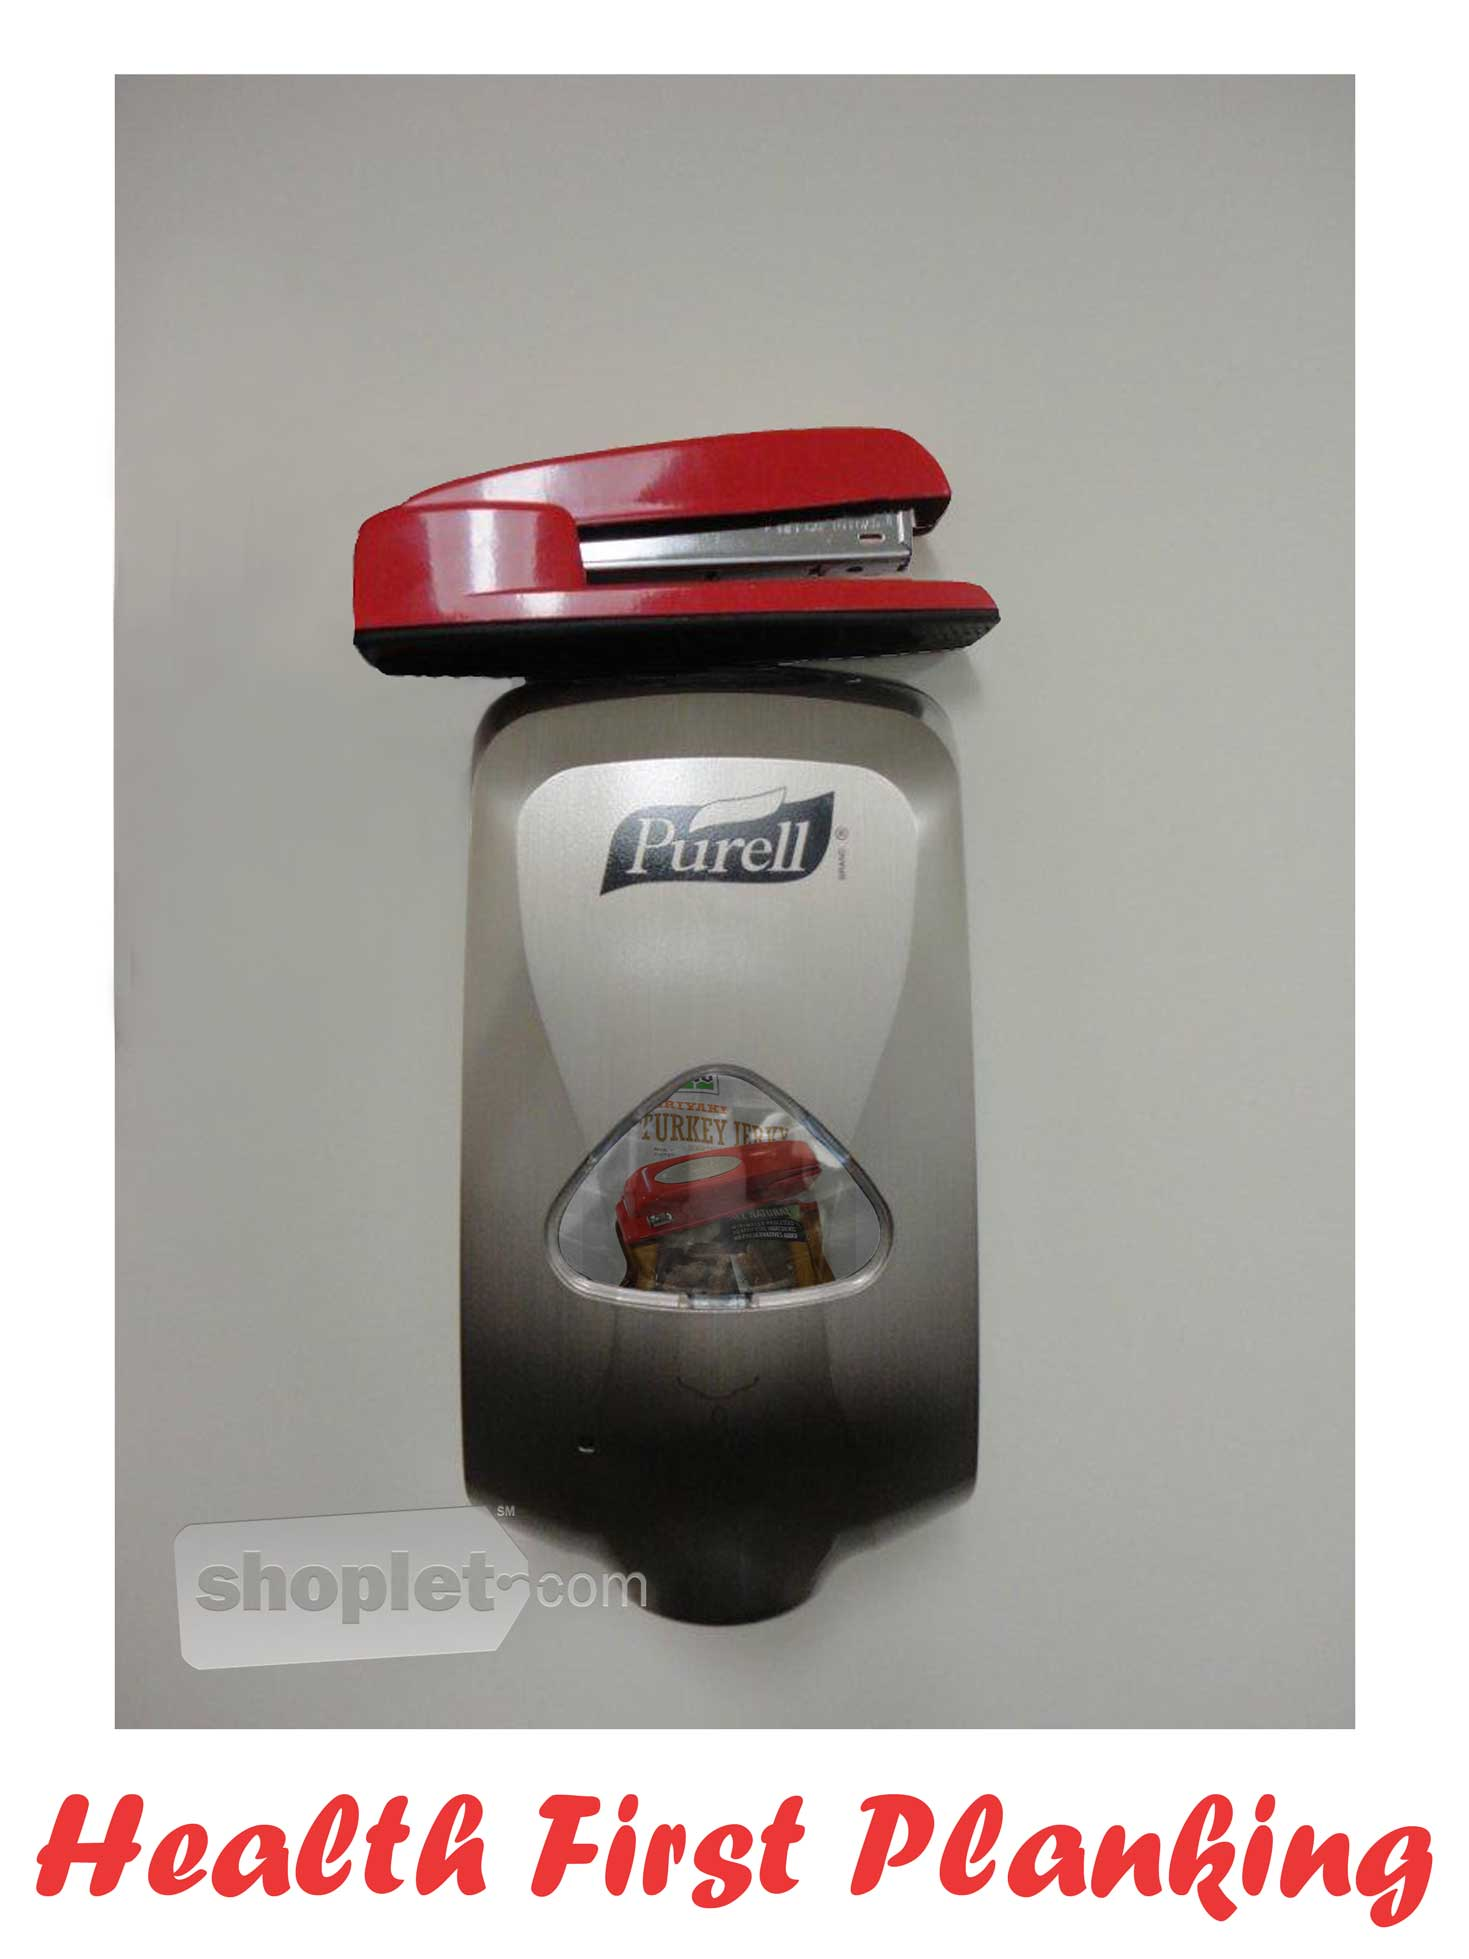 Shoplet Planking Stapler Wall Sanitizer Shoplet Planking Stapler Planks on Purell Wall Hand Sanitizer